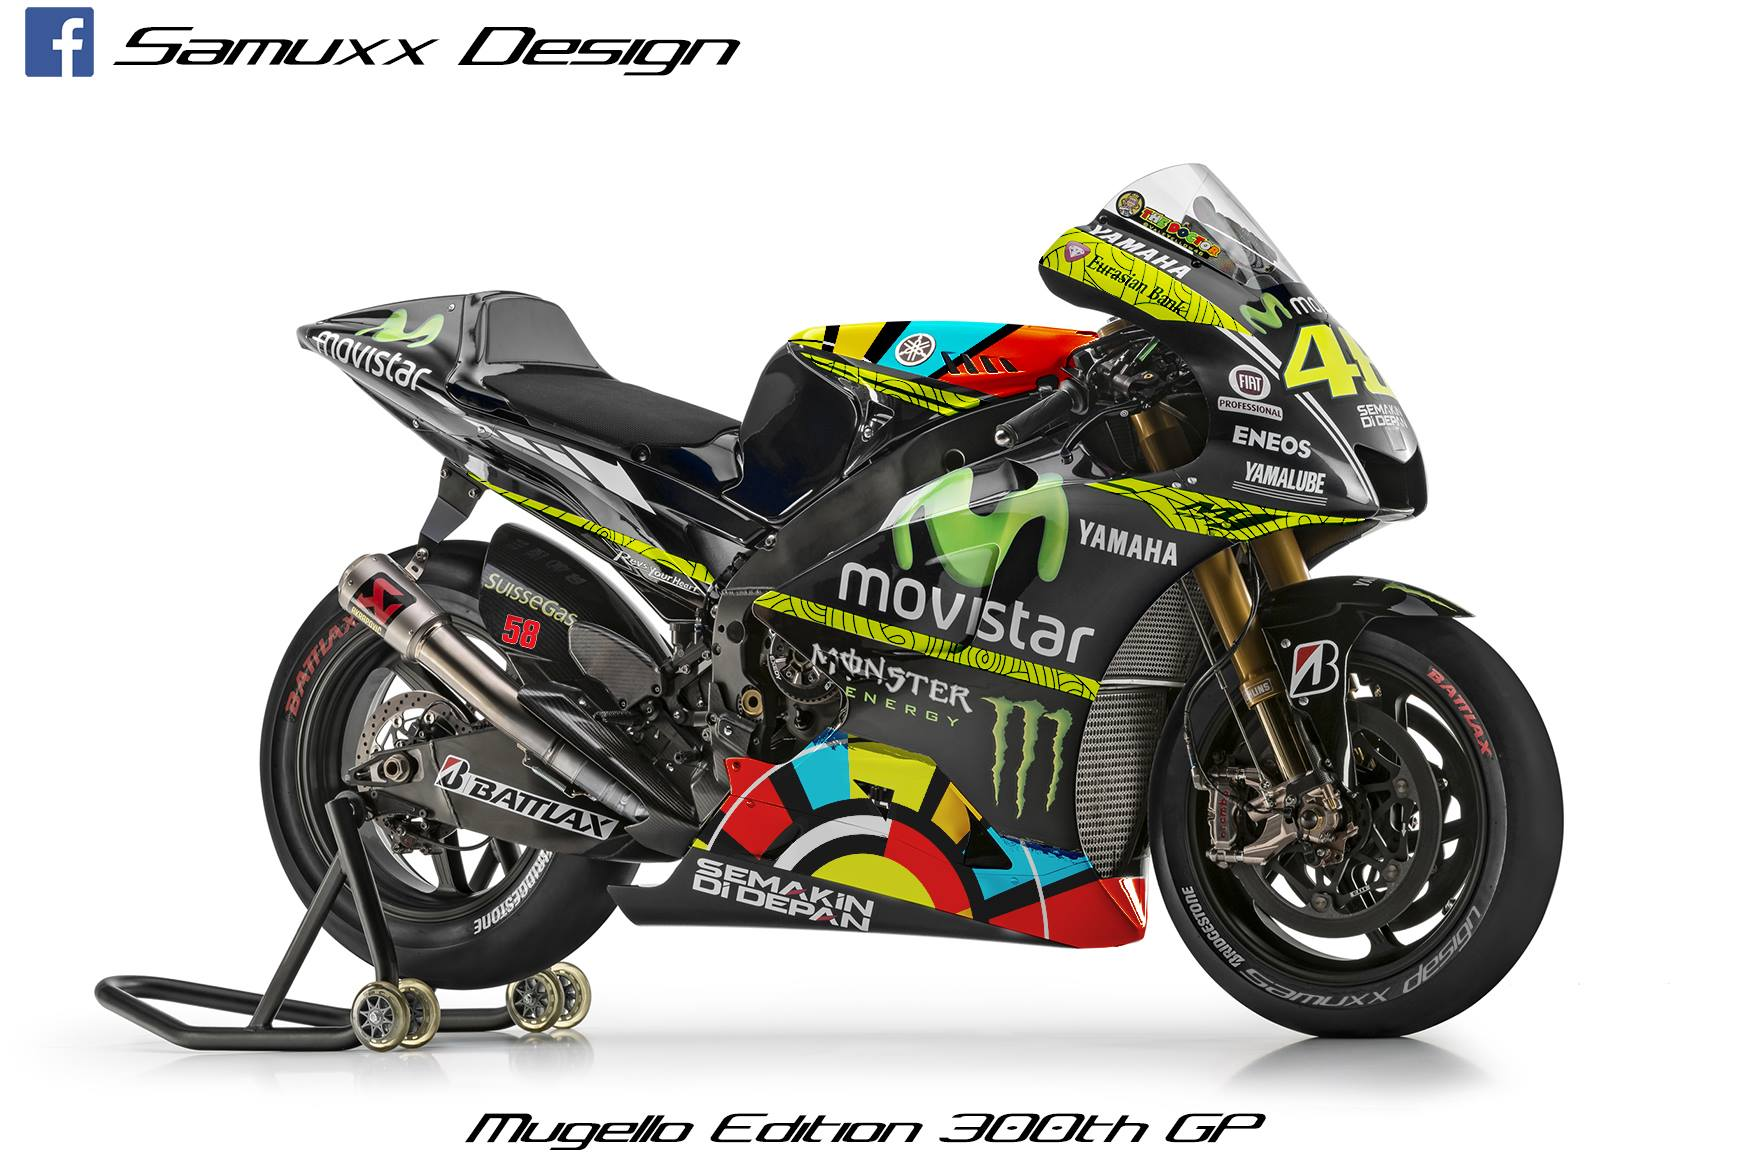 300th Gp Anniversary Bike Rendered For Valentino Rossi Autoevolution